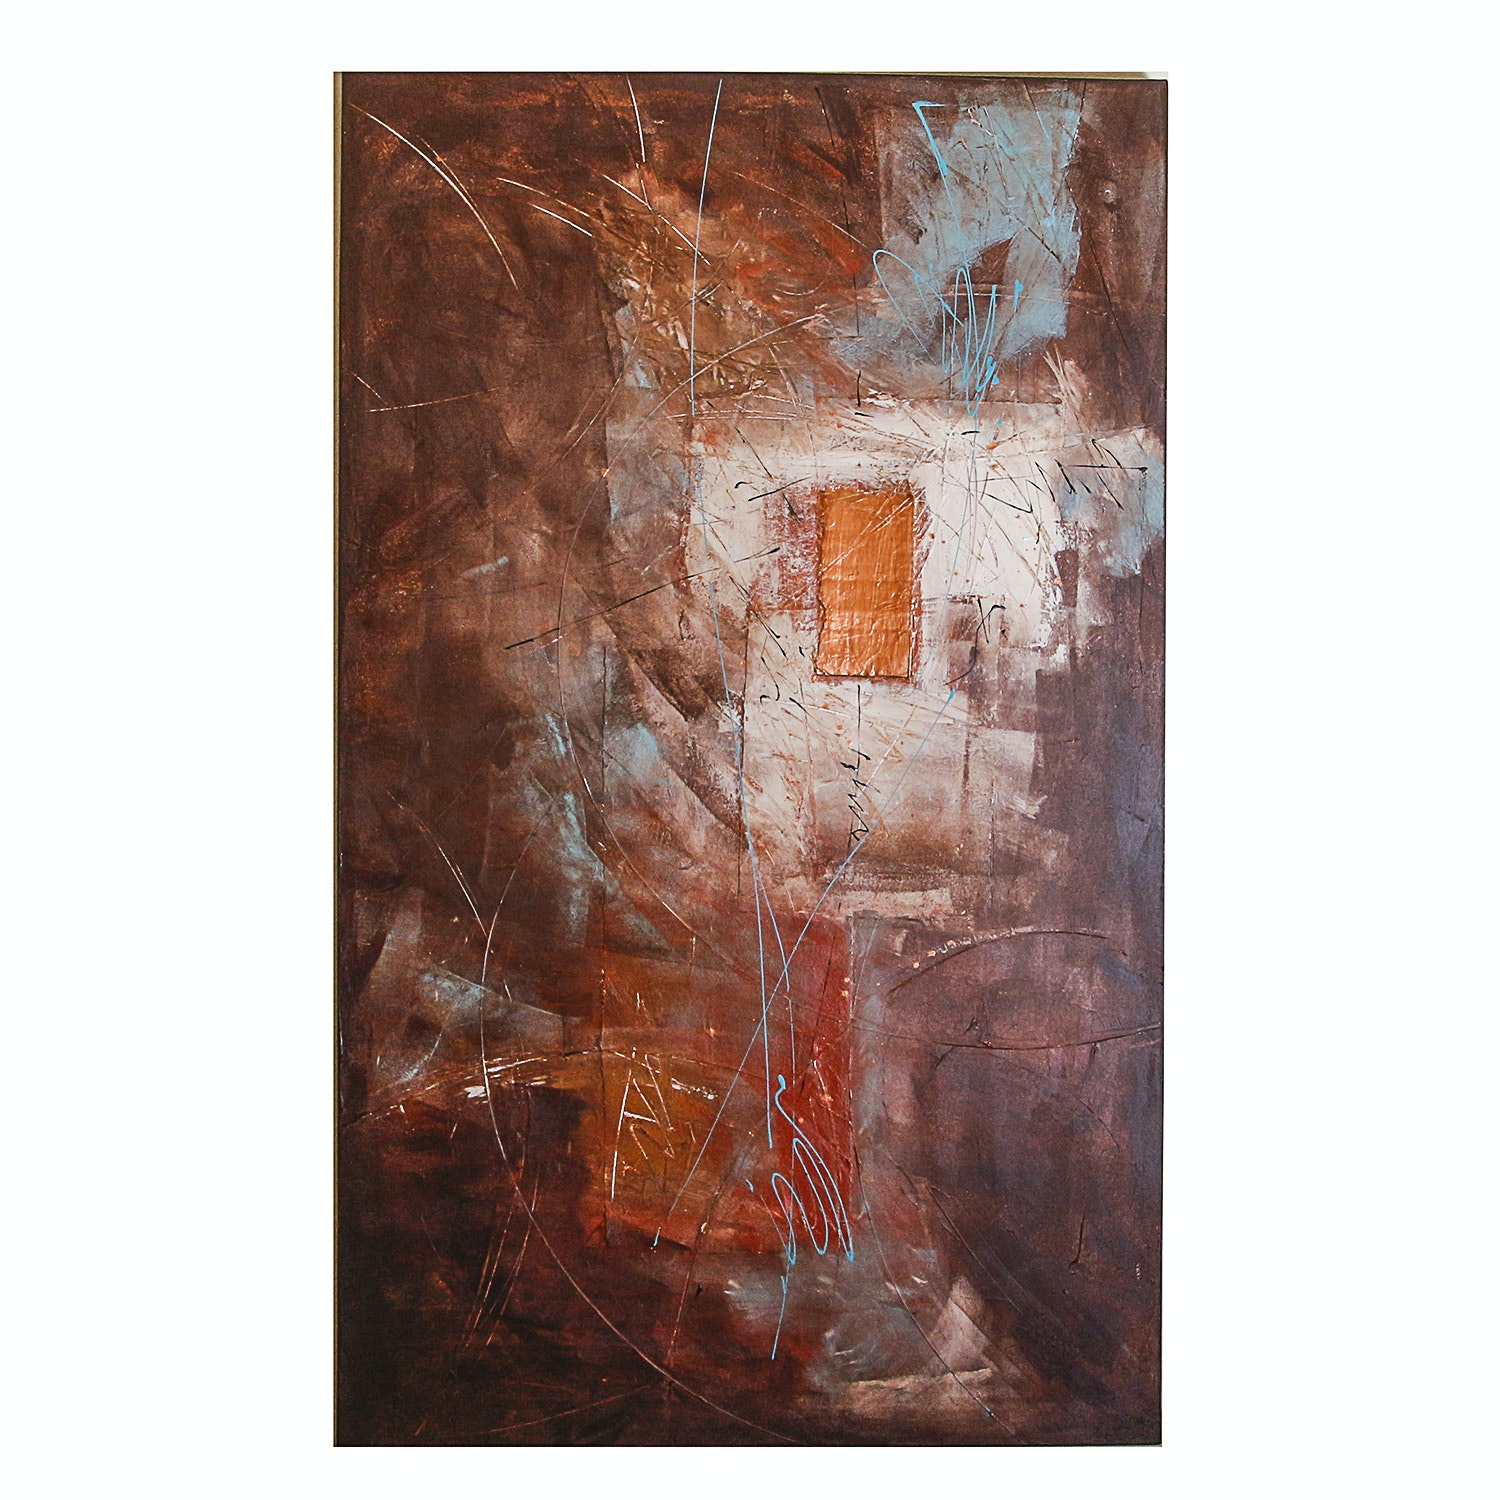 Large-Scale Giclee On Canvas